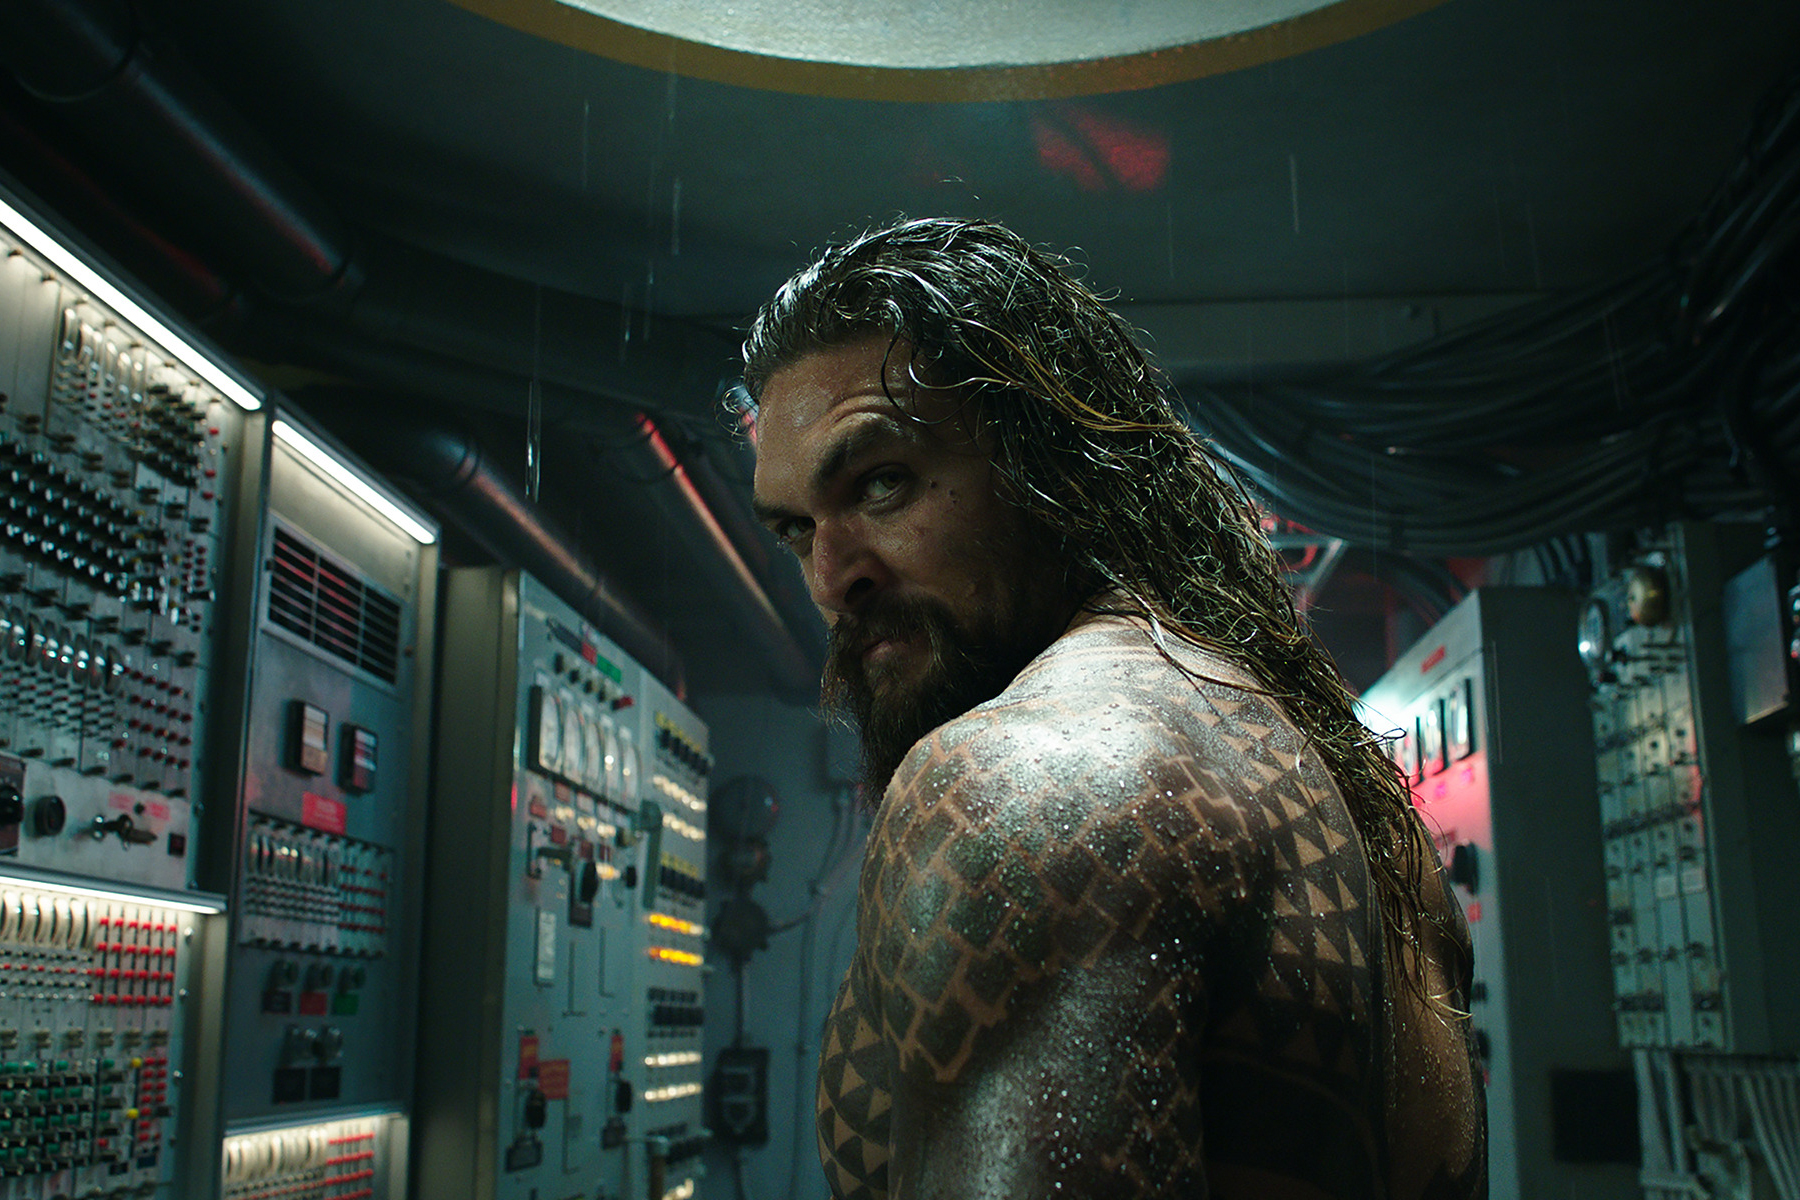 Best Movies to See In Dec.: 'Aquaman,' 'Spider-Man,' 'Mary Poppins Returns'